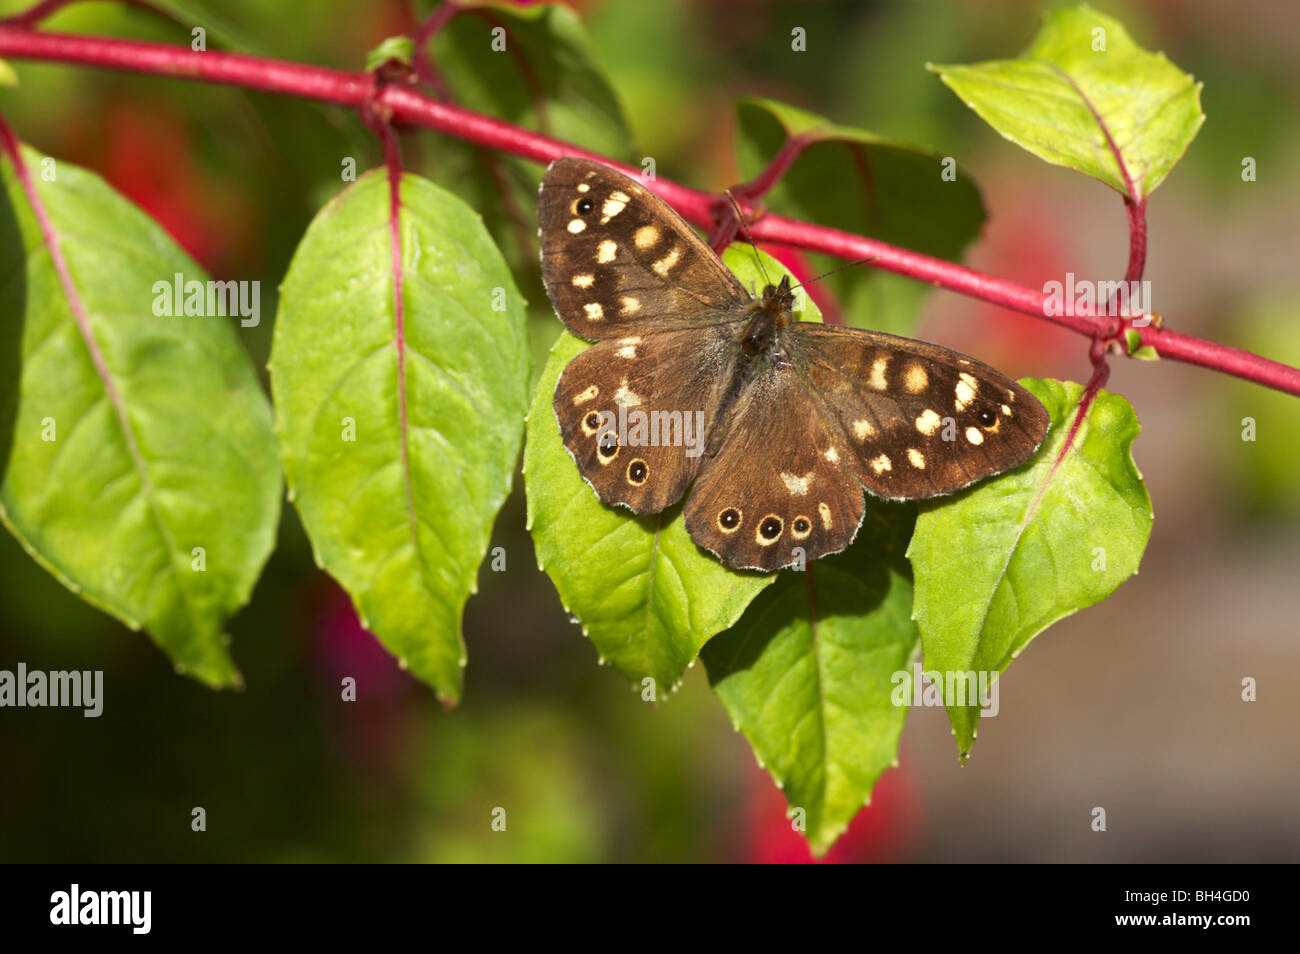 Speckled wood butterfly (pararge aegeria) resting on fuschia bush in September. - Stock Image